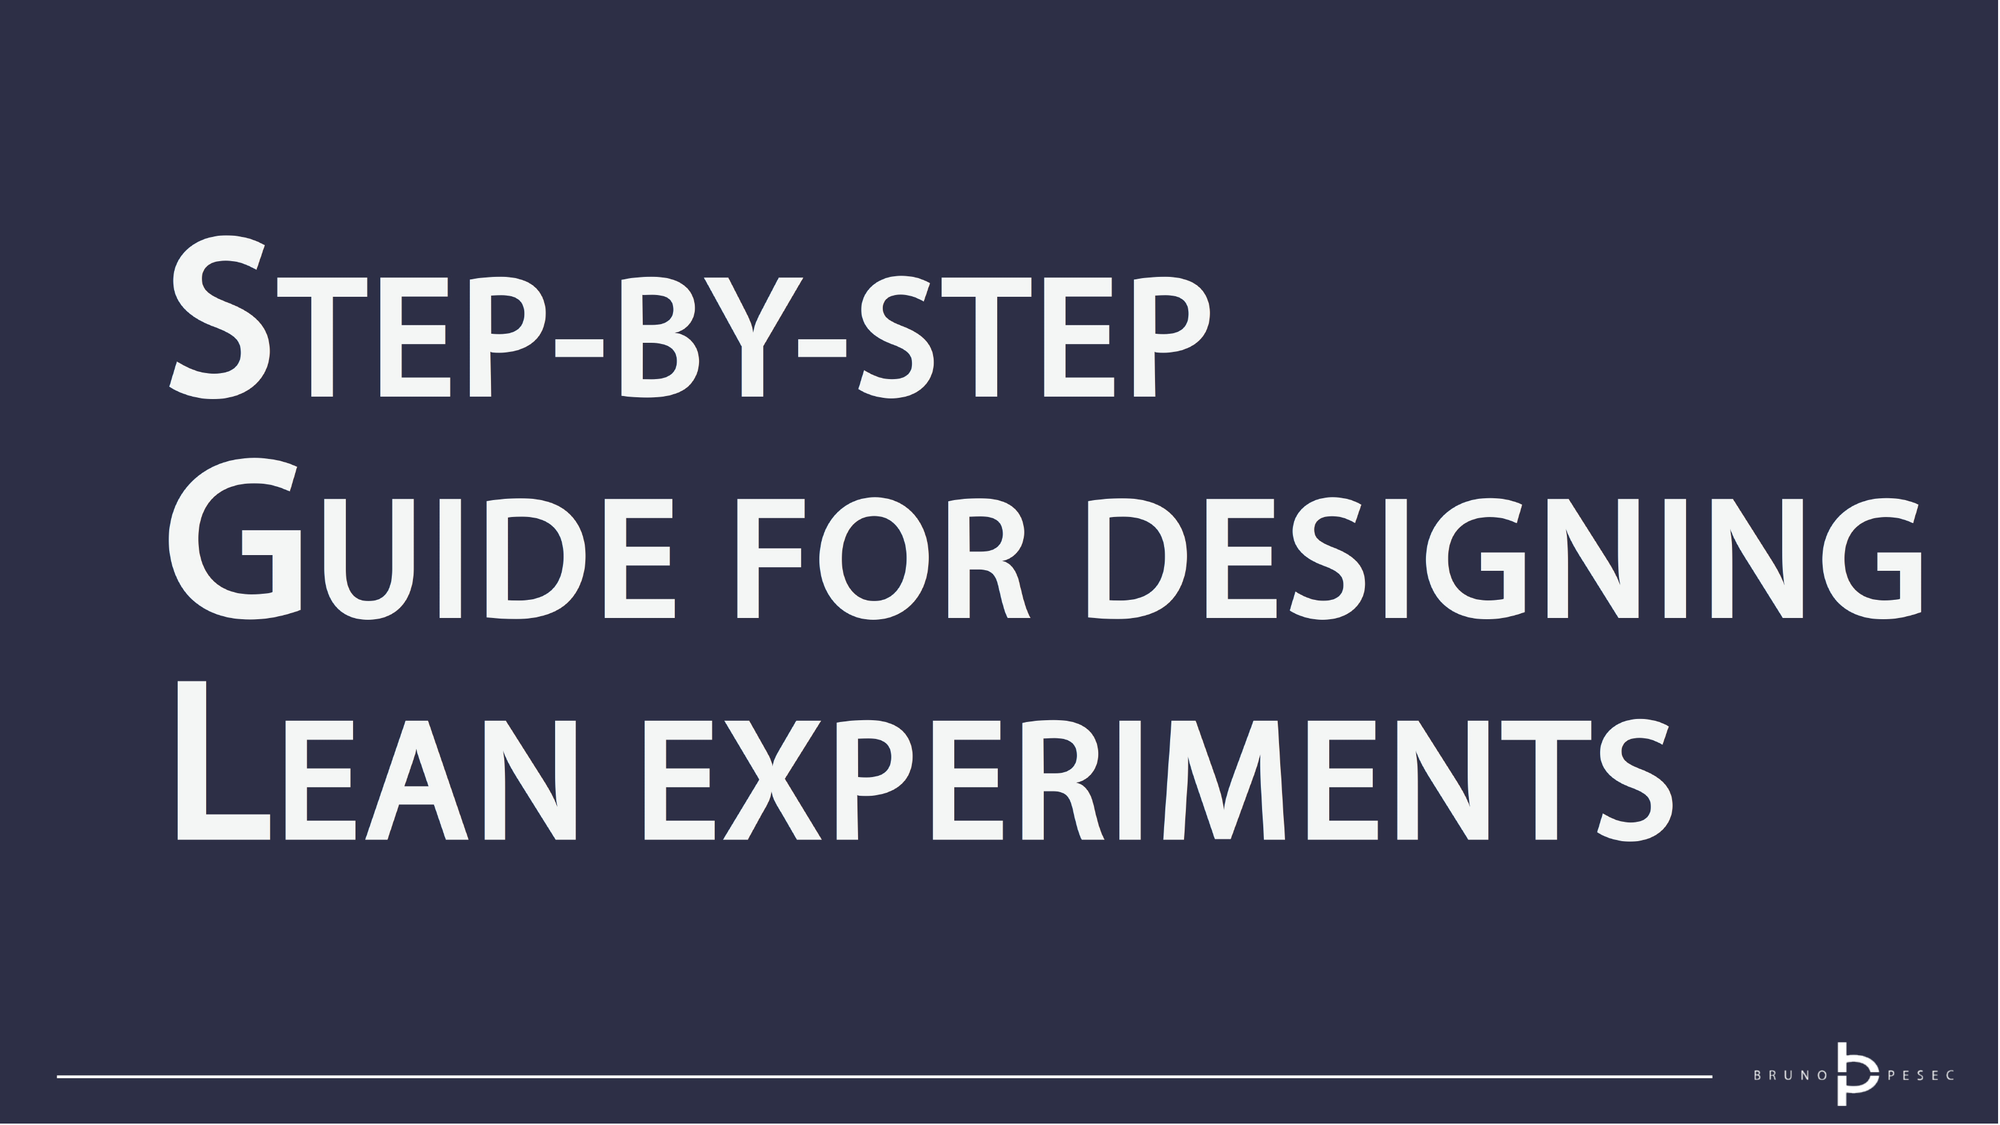 Step-by-step guide for designing Lean experiments